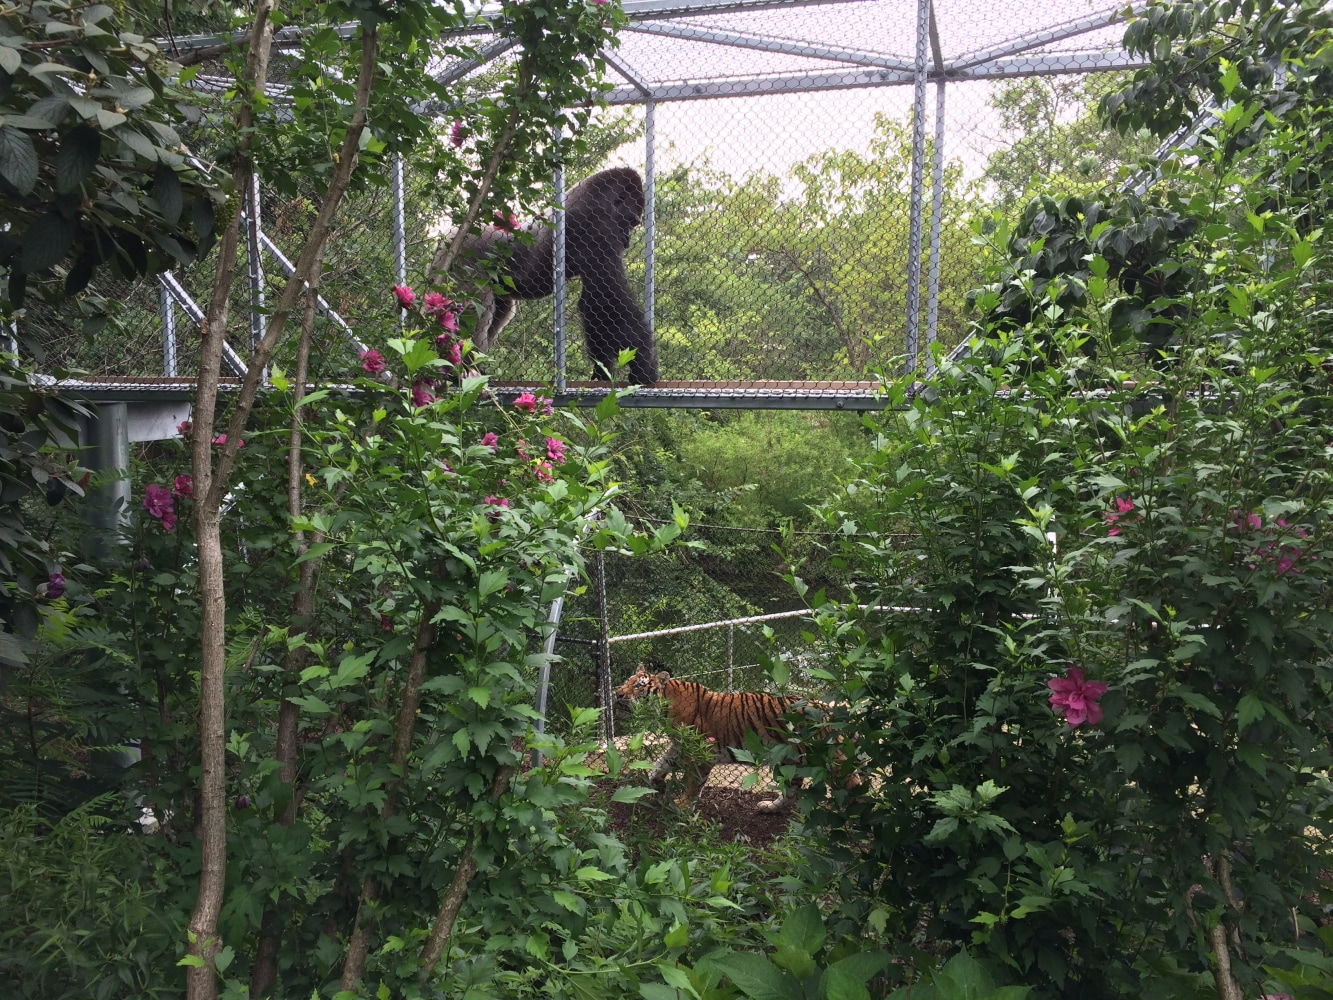 Gorilla Death Do Zoos Sacrifice Safety For Close Up Looks